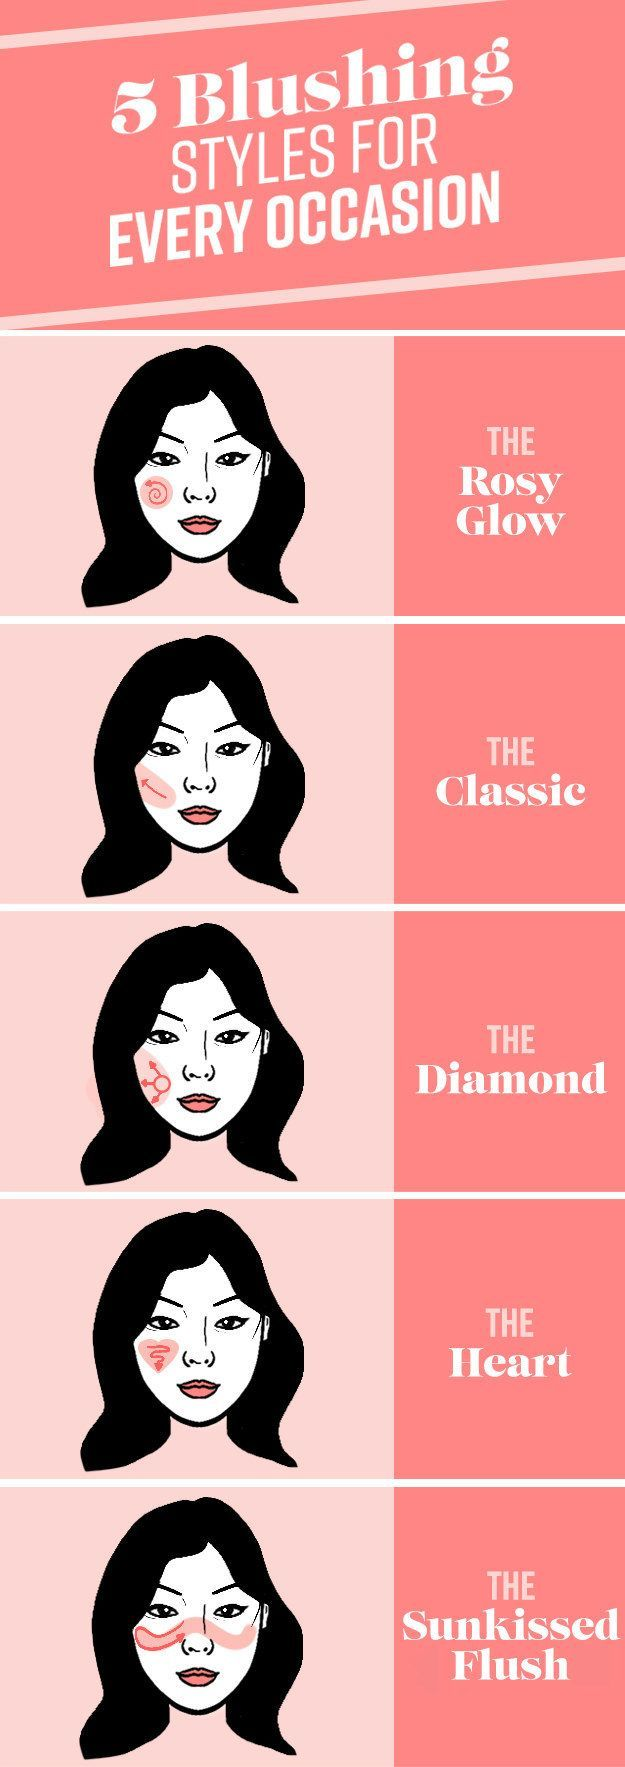 And when all else fails, try one of these foolproof blush looks.